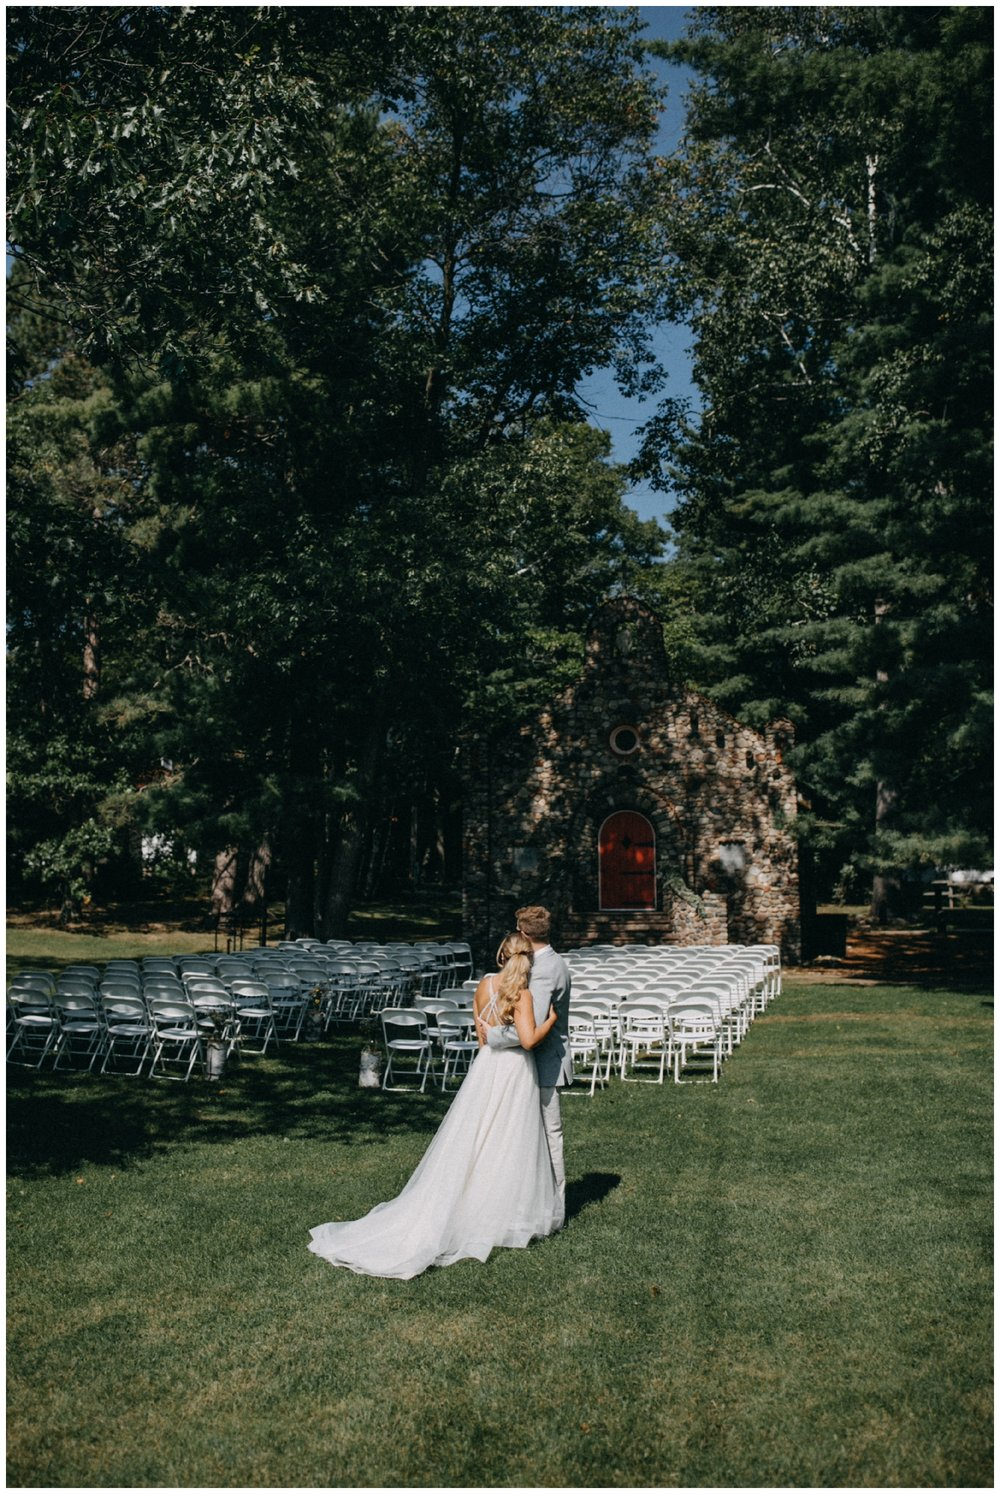 Romantic woodsy wedding at Camp Foley in Pine River Minnesota